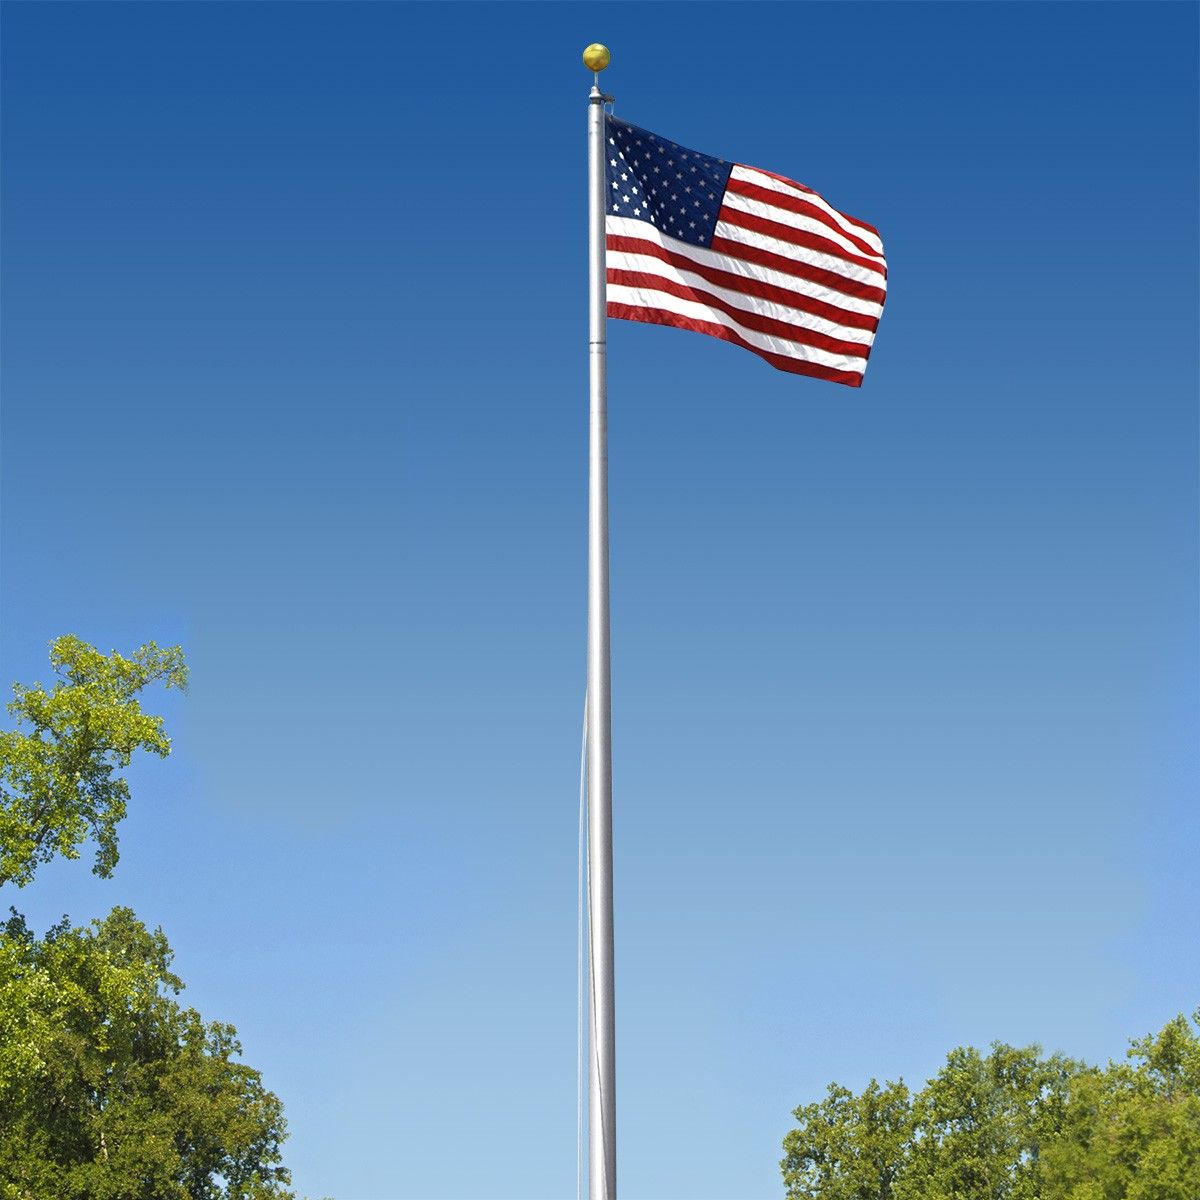 6 Foot Flag Pole Aluminum Spinning Flagpole For Grommet Or House Flag By College Flags And Banners Co 23 95 Our Teles Outdoor Flags College Flags Flag Pole